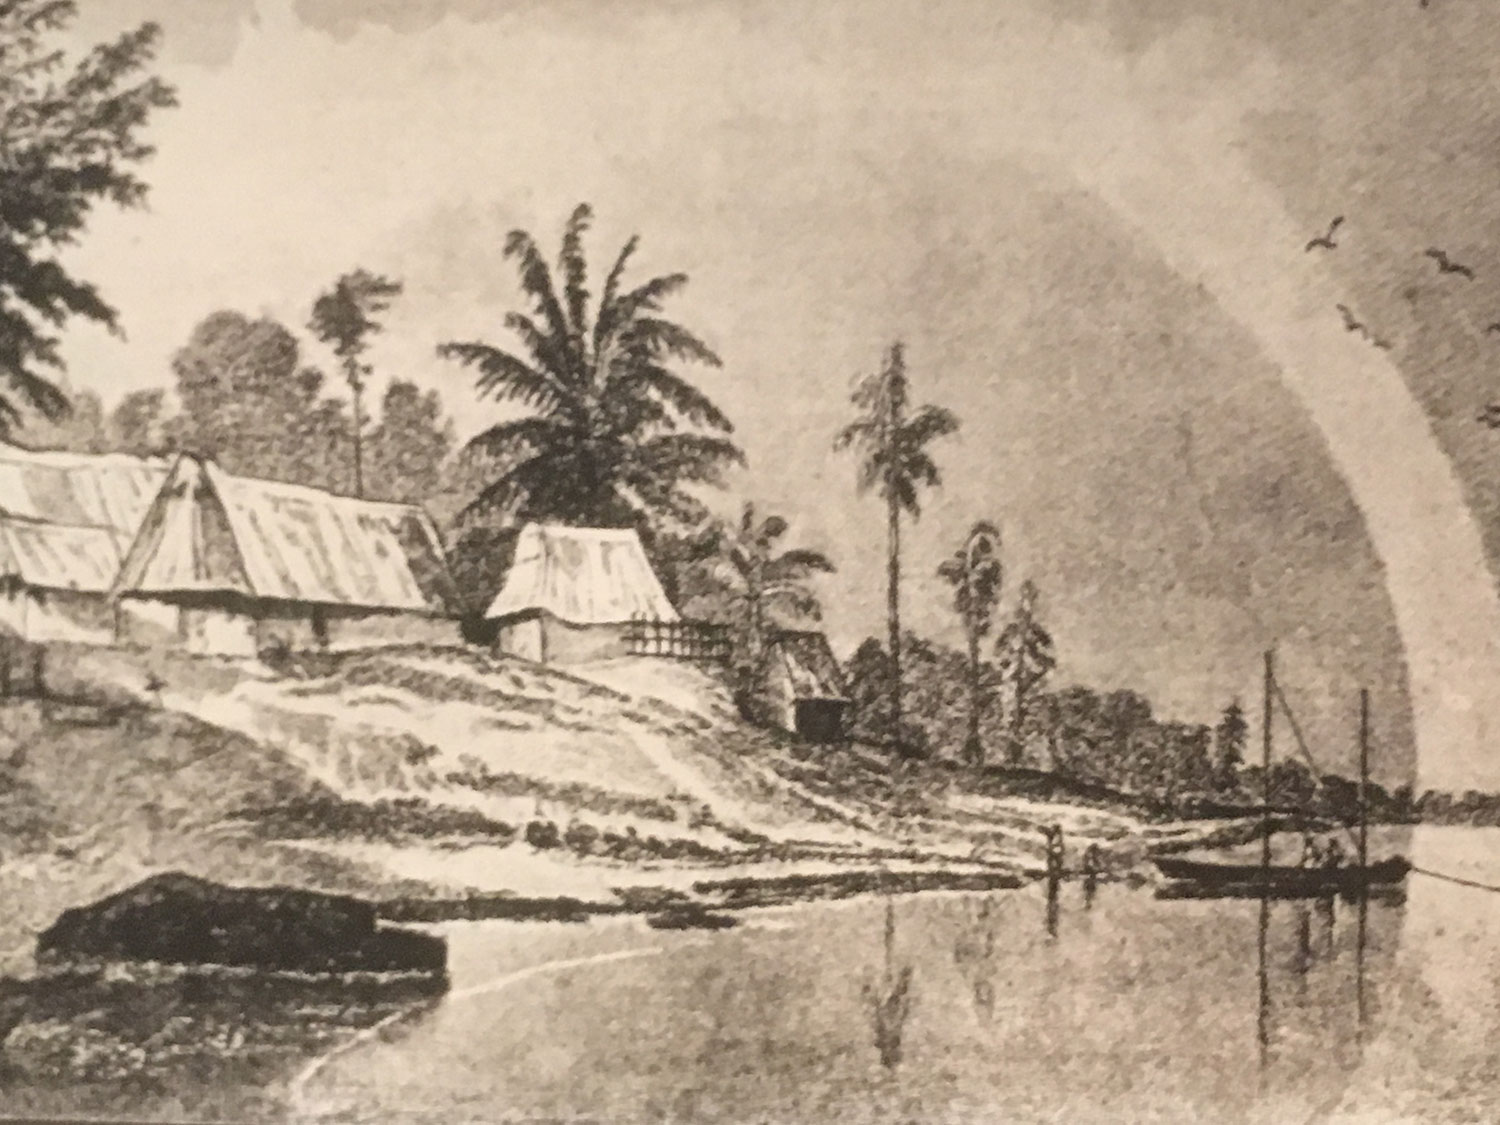 Drawing of San Miguel by  Frederick Catherwood  in 1841, during his visit to the island with  John Lloyds Stephens .